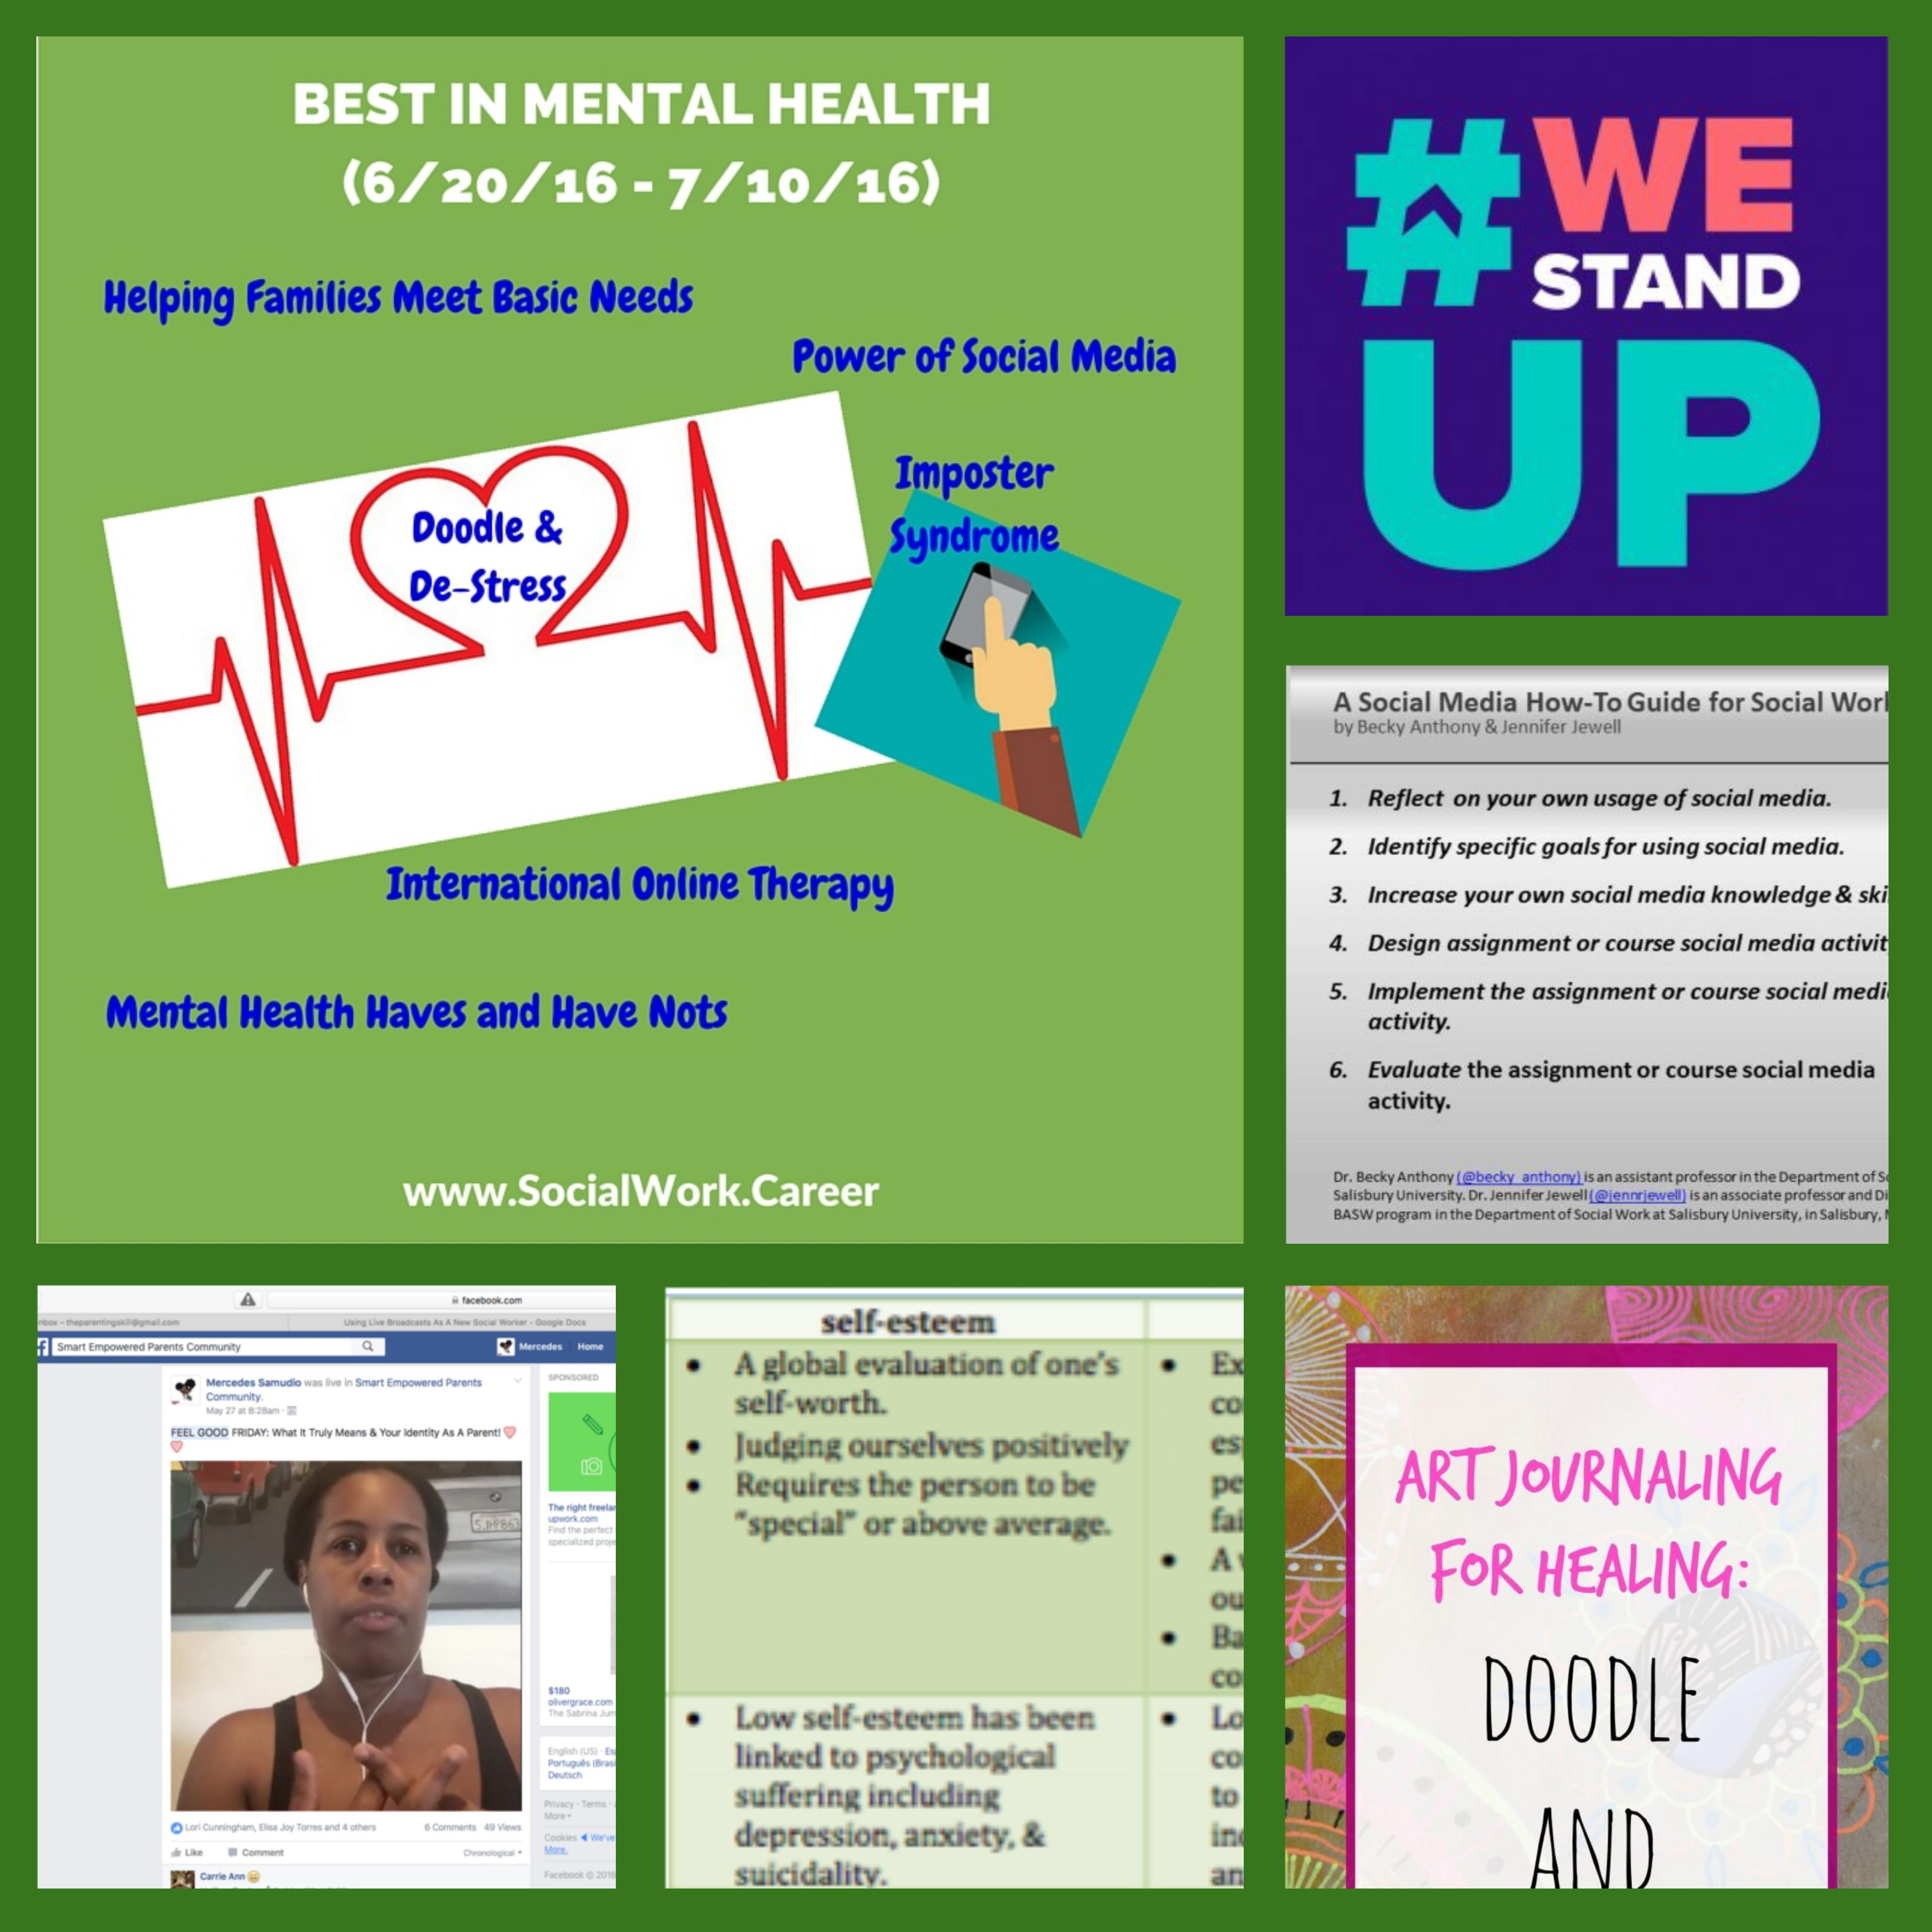 Best in Mental Health 6/20/16 - 7/10/16) < roundup from around the web covering the latest in social work, mental health, private practice & more